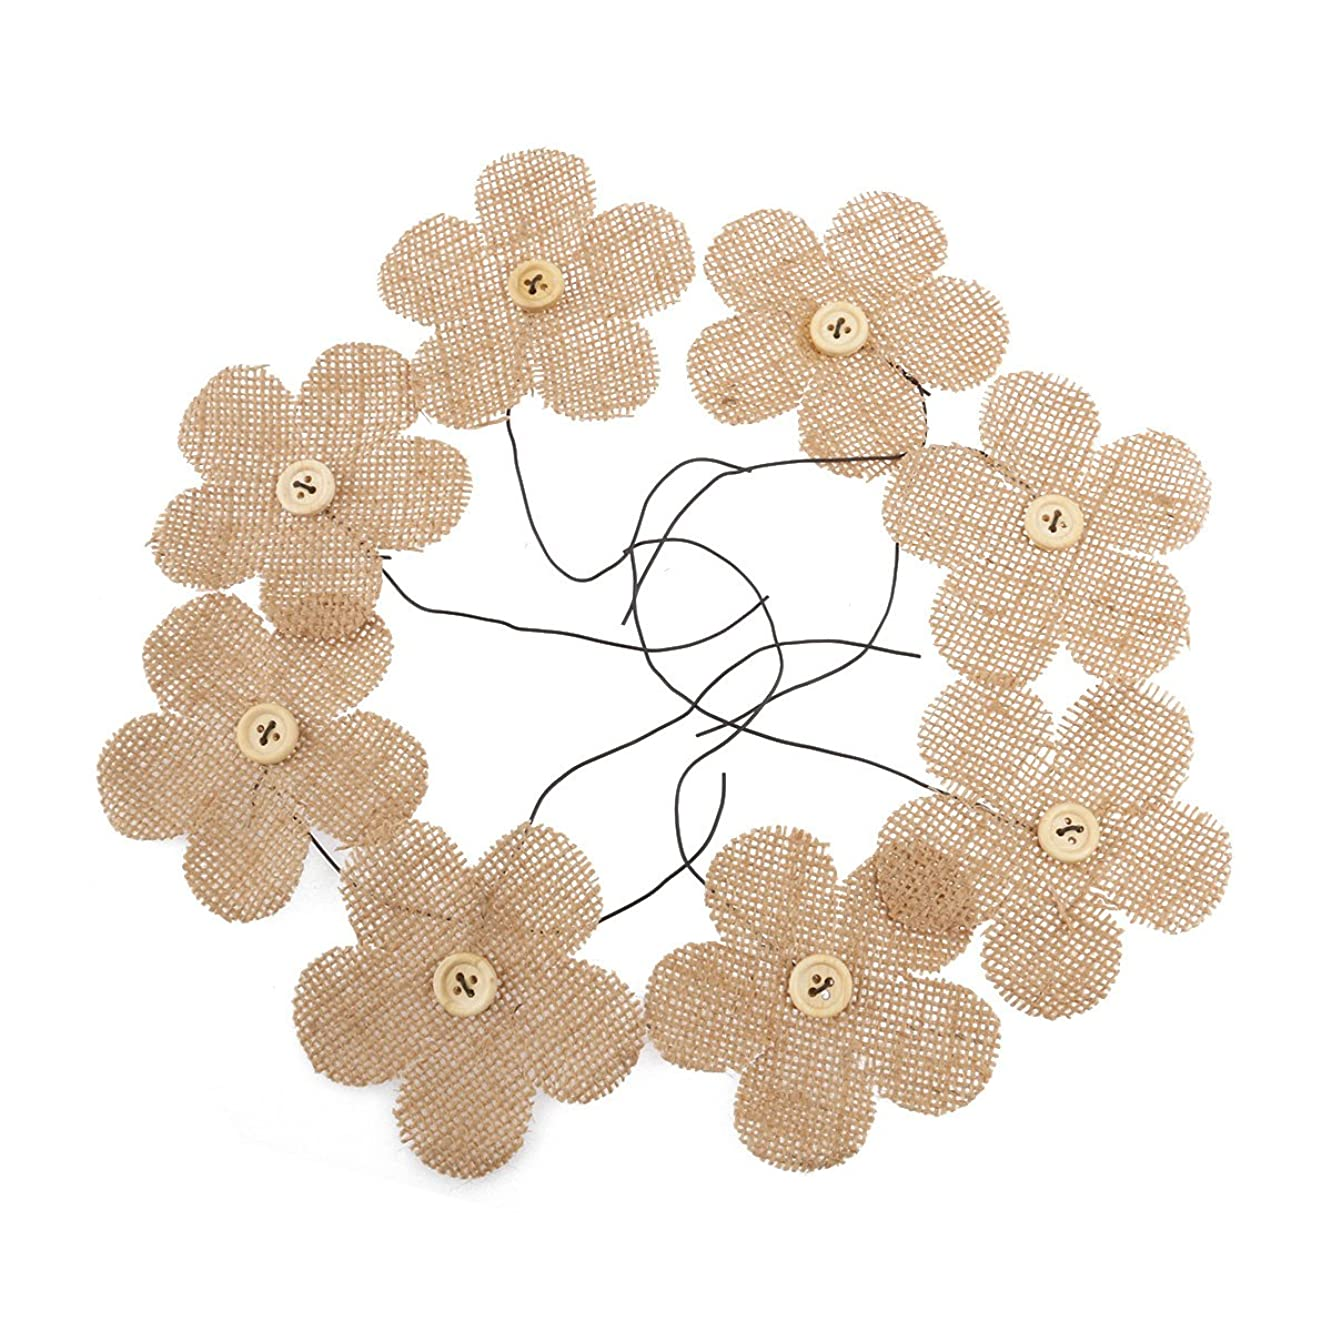 NUOLUX 8pcs Burlap Flowers with Buttons - Brown